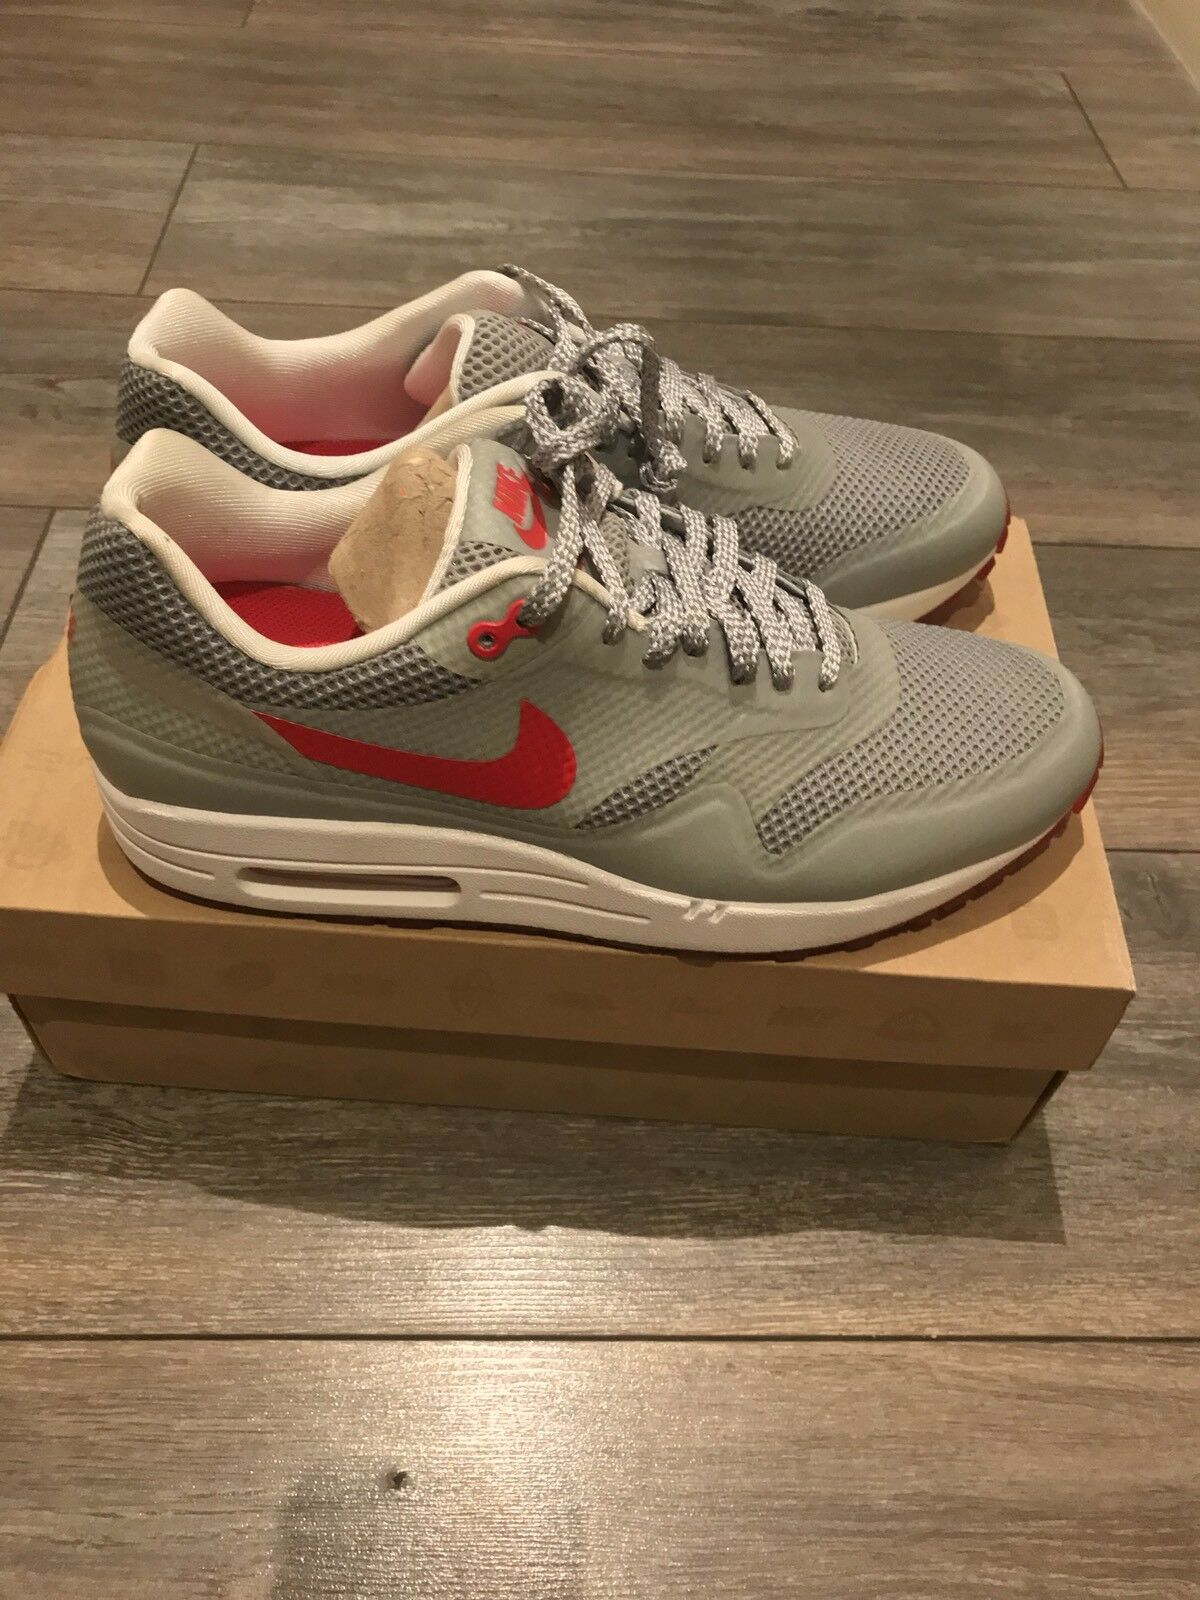 Brand New Air Max 1 Taille Hyperfuse Taille 1 UK 7.5 3 m 25813f